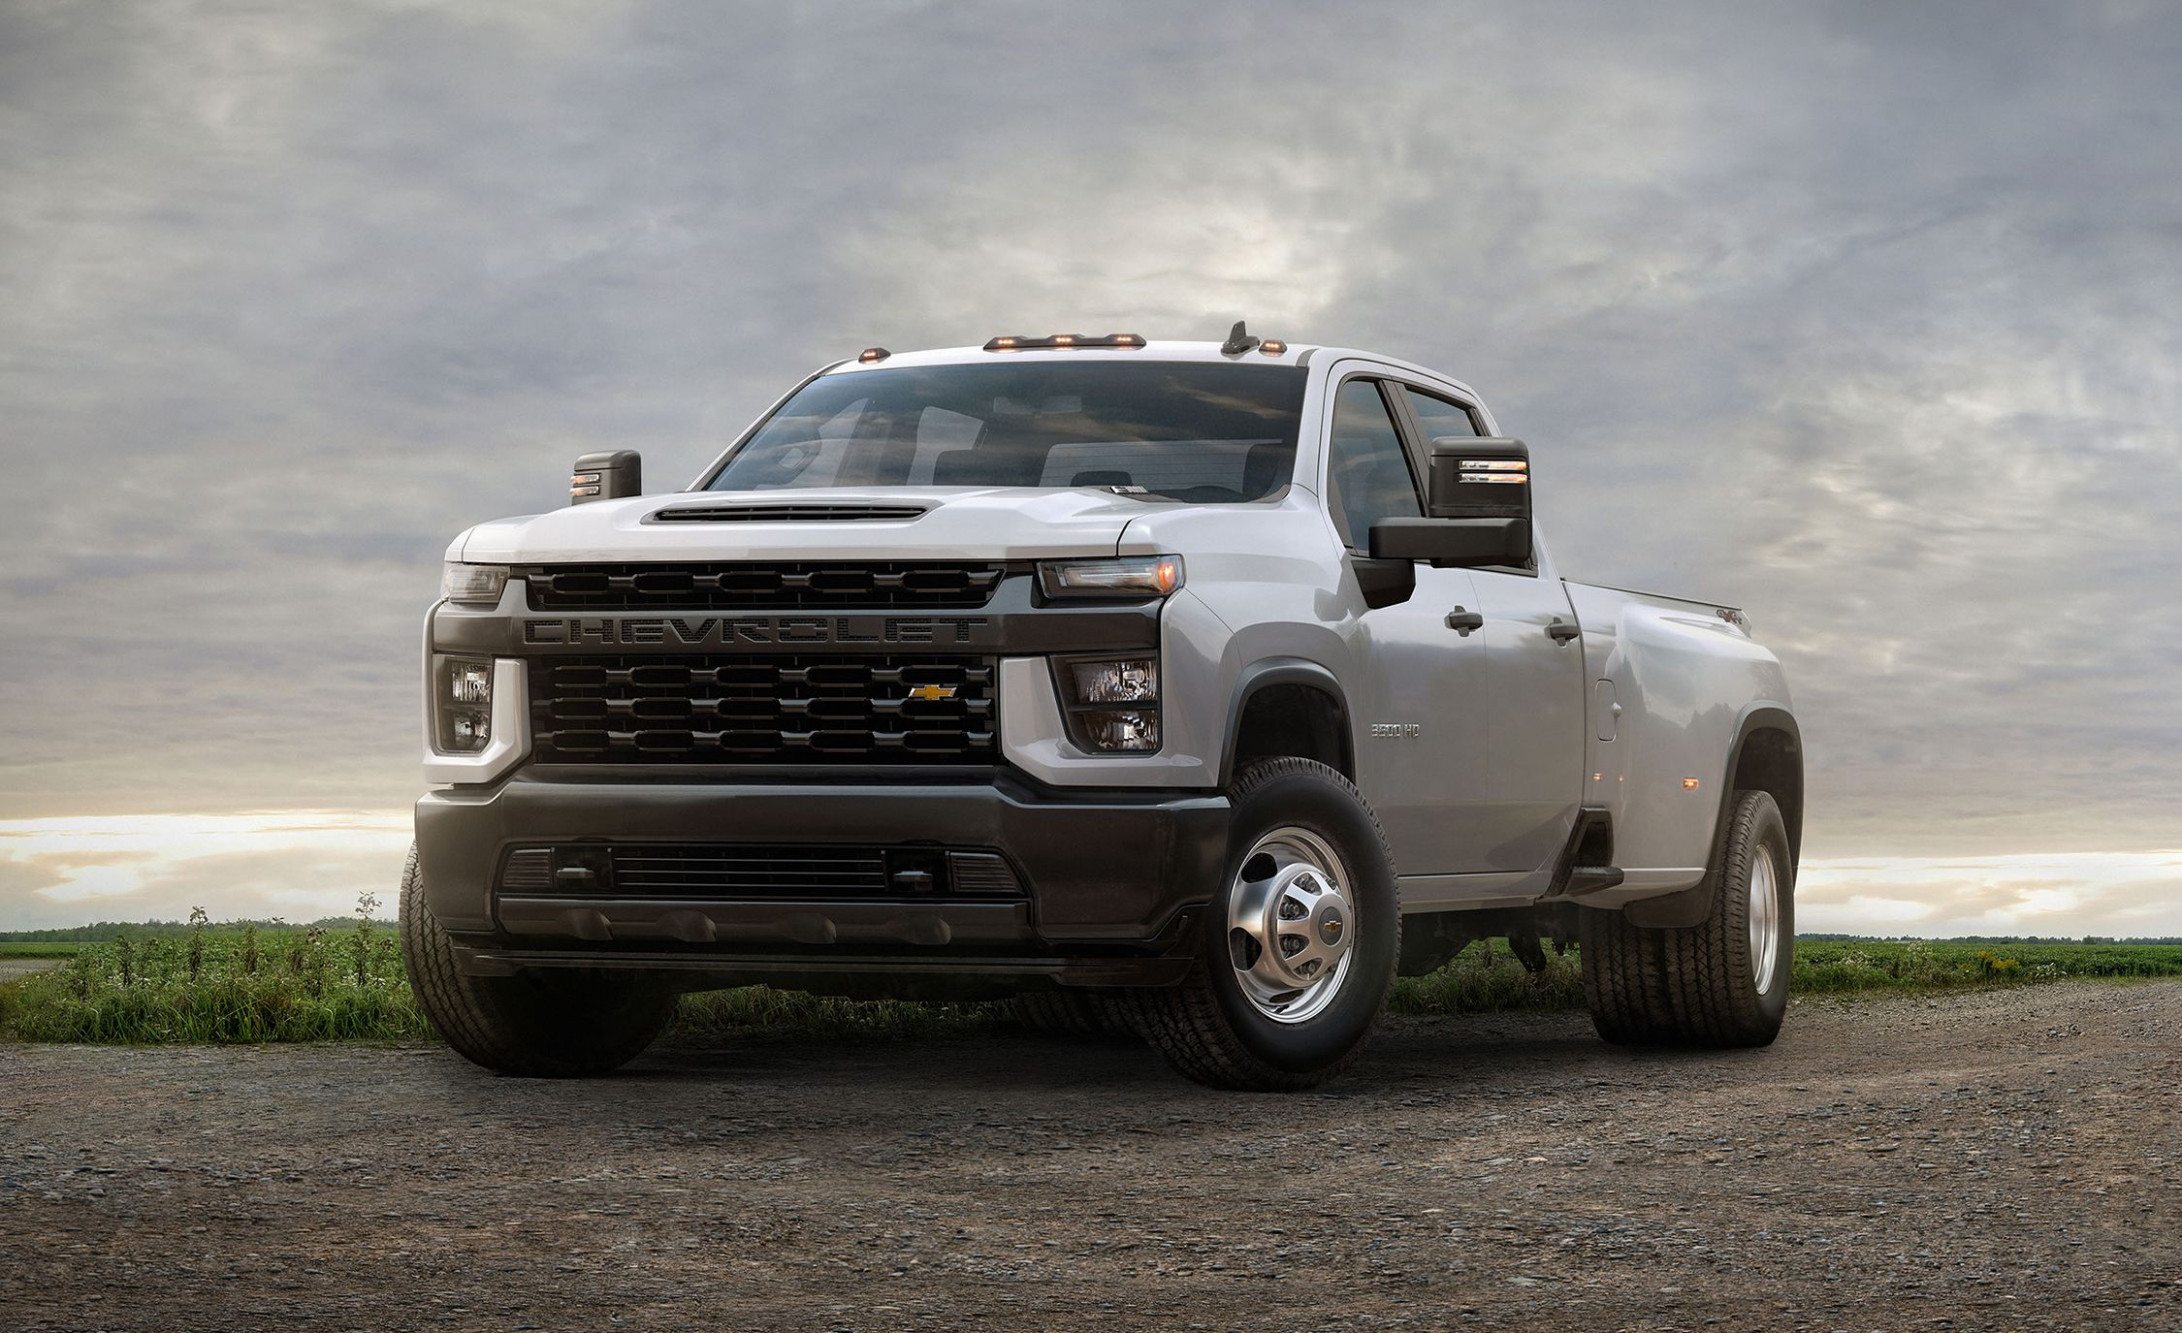 Pricing for 8 Chevrolet Silverado HD Pickups - Details of 8 ..